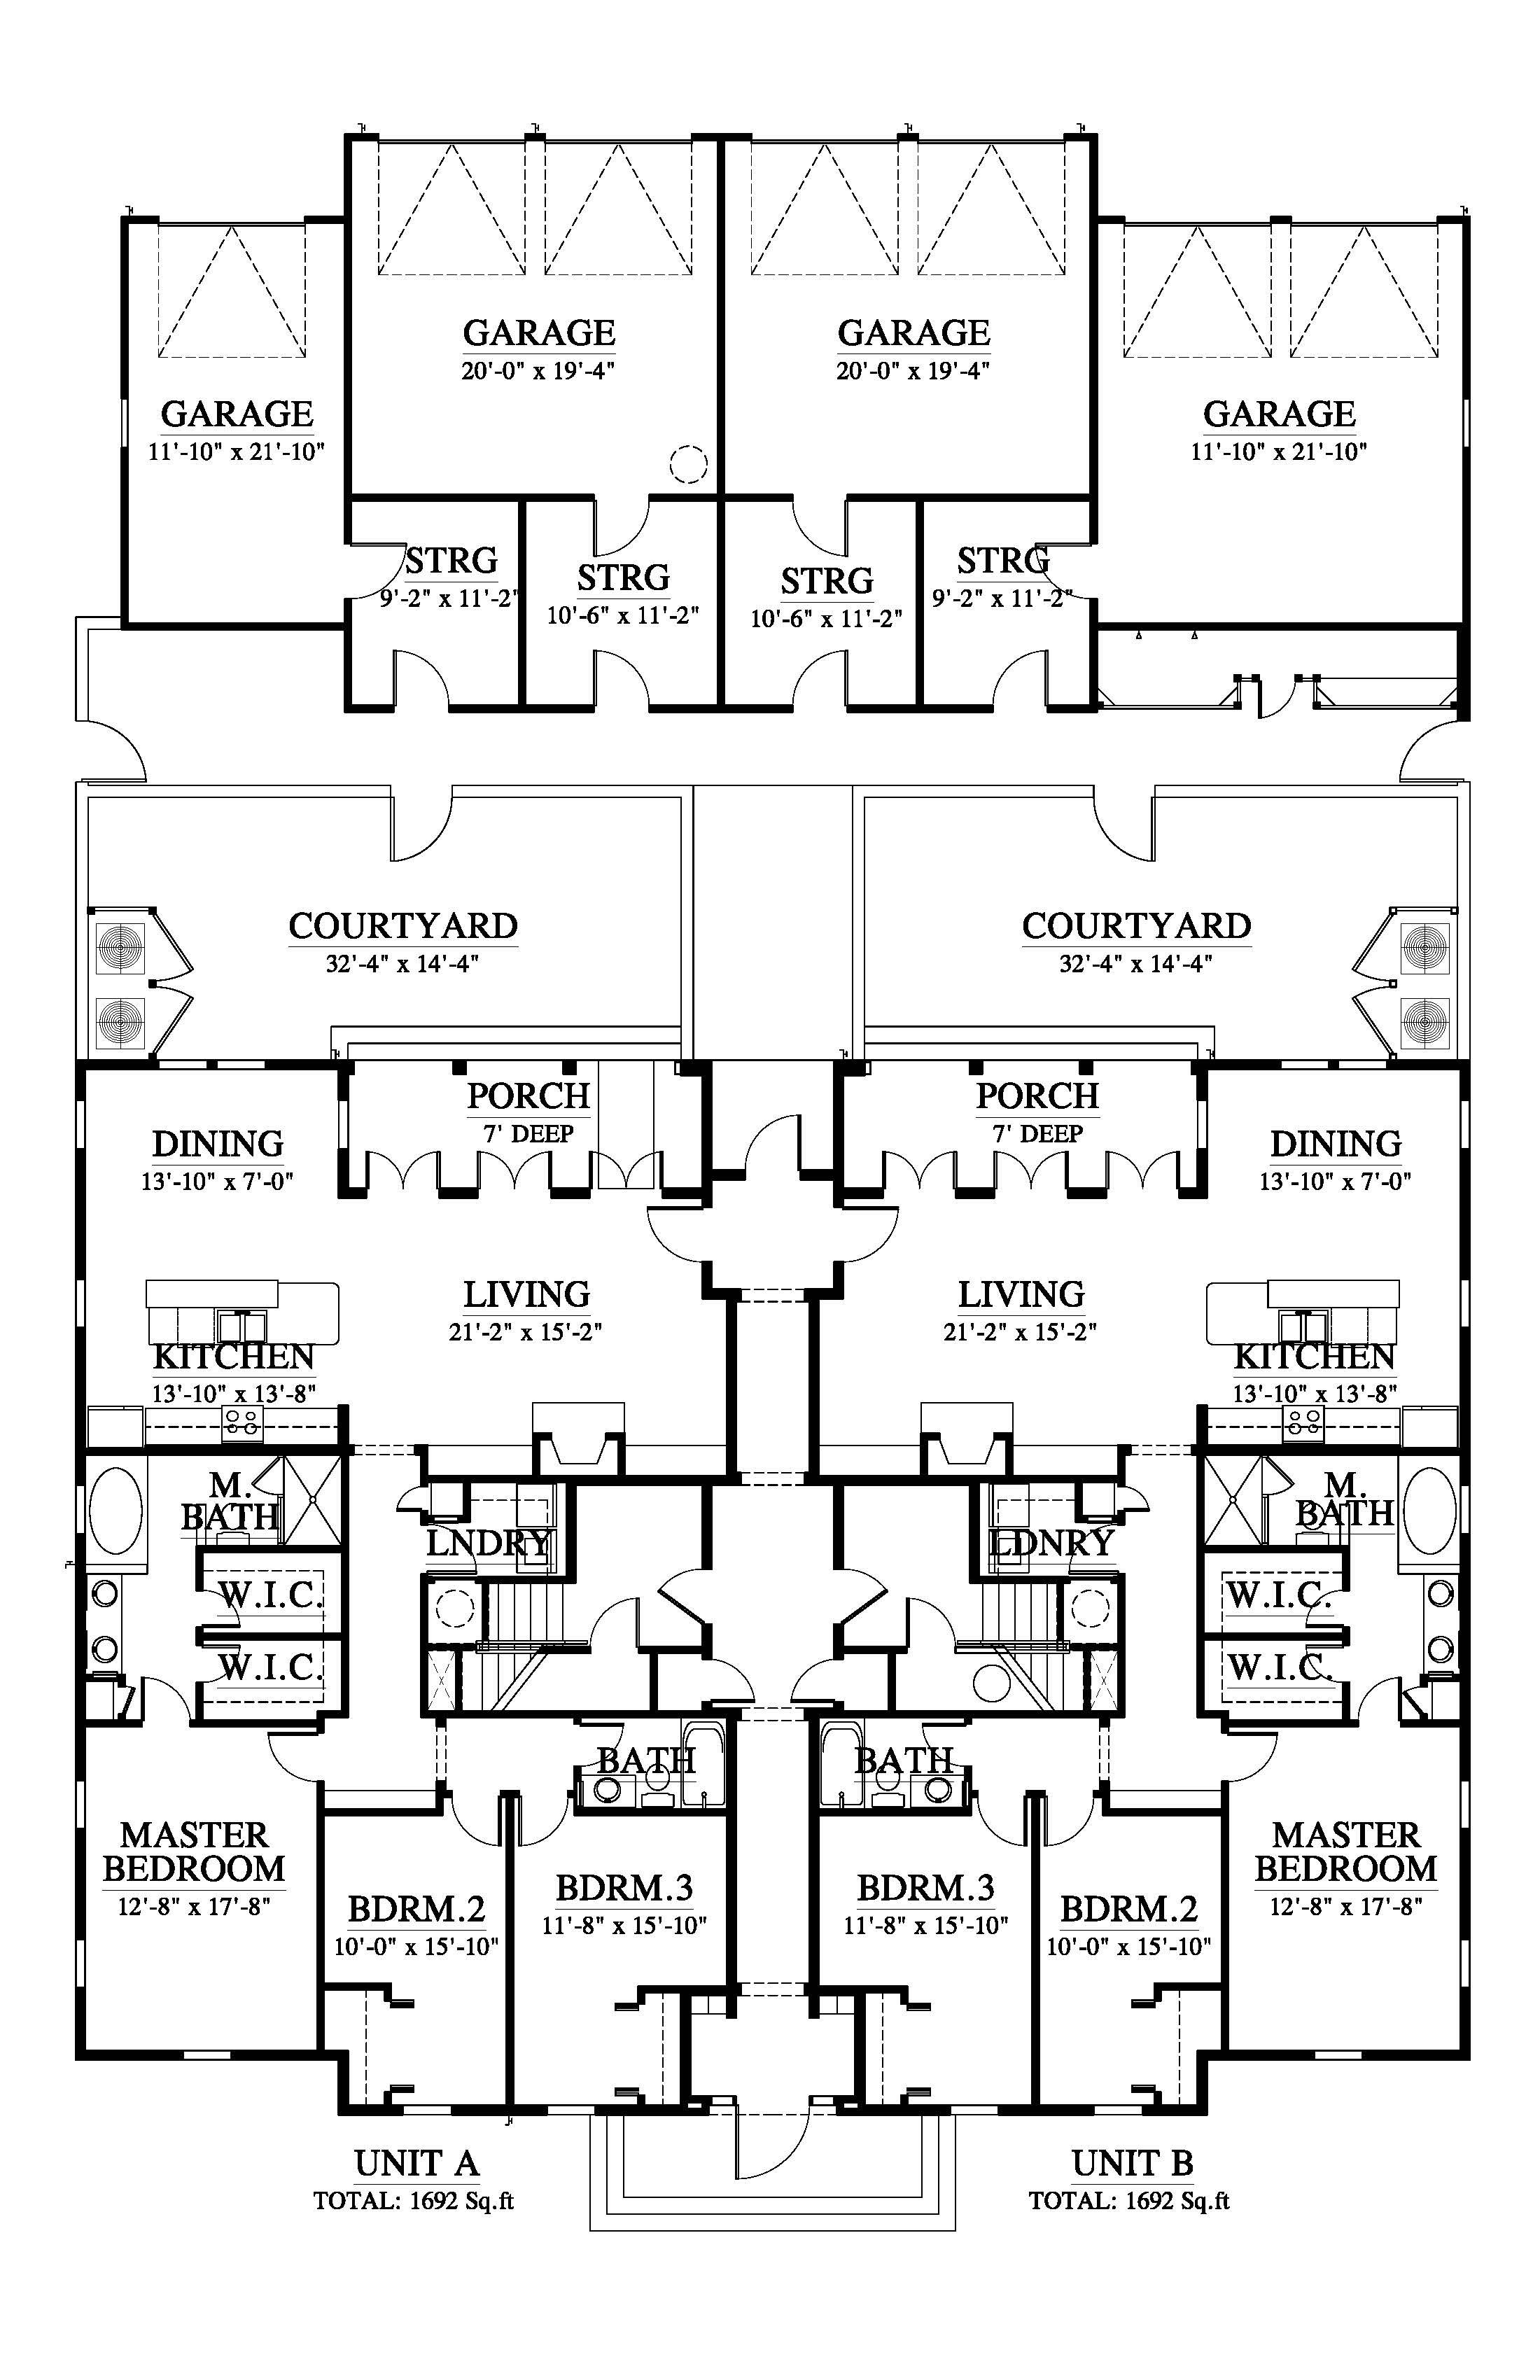 East Beach Quad Townhouse House Plan 05402 Design From Allison Ramsey Architects Duplex Floor Plans Architectural Floor Plans Coastal House Plans